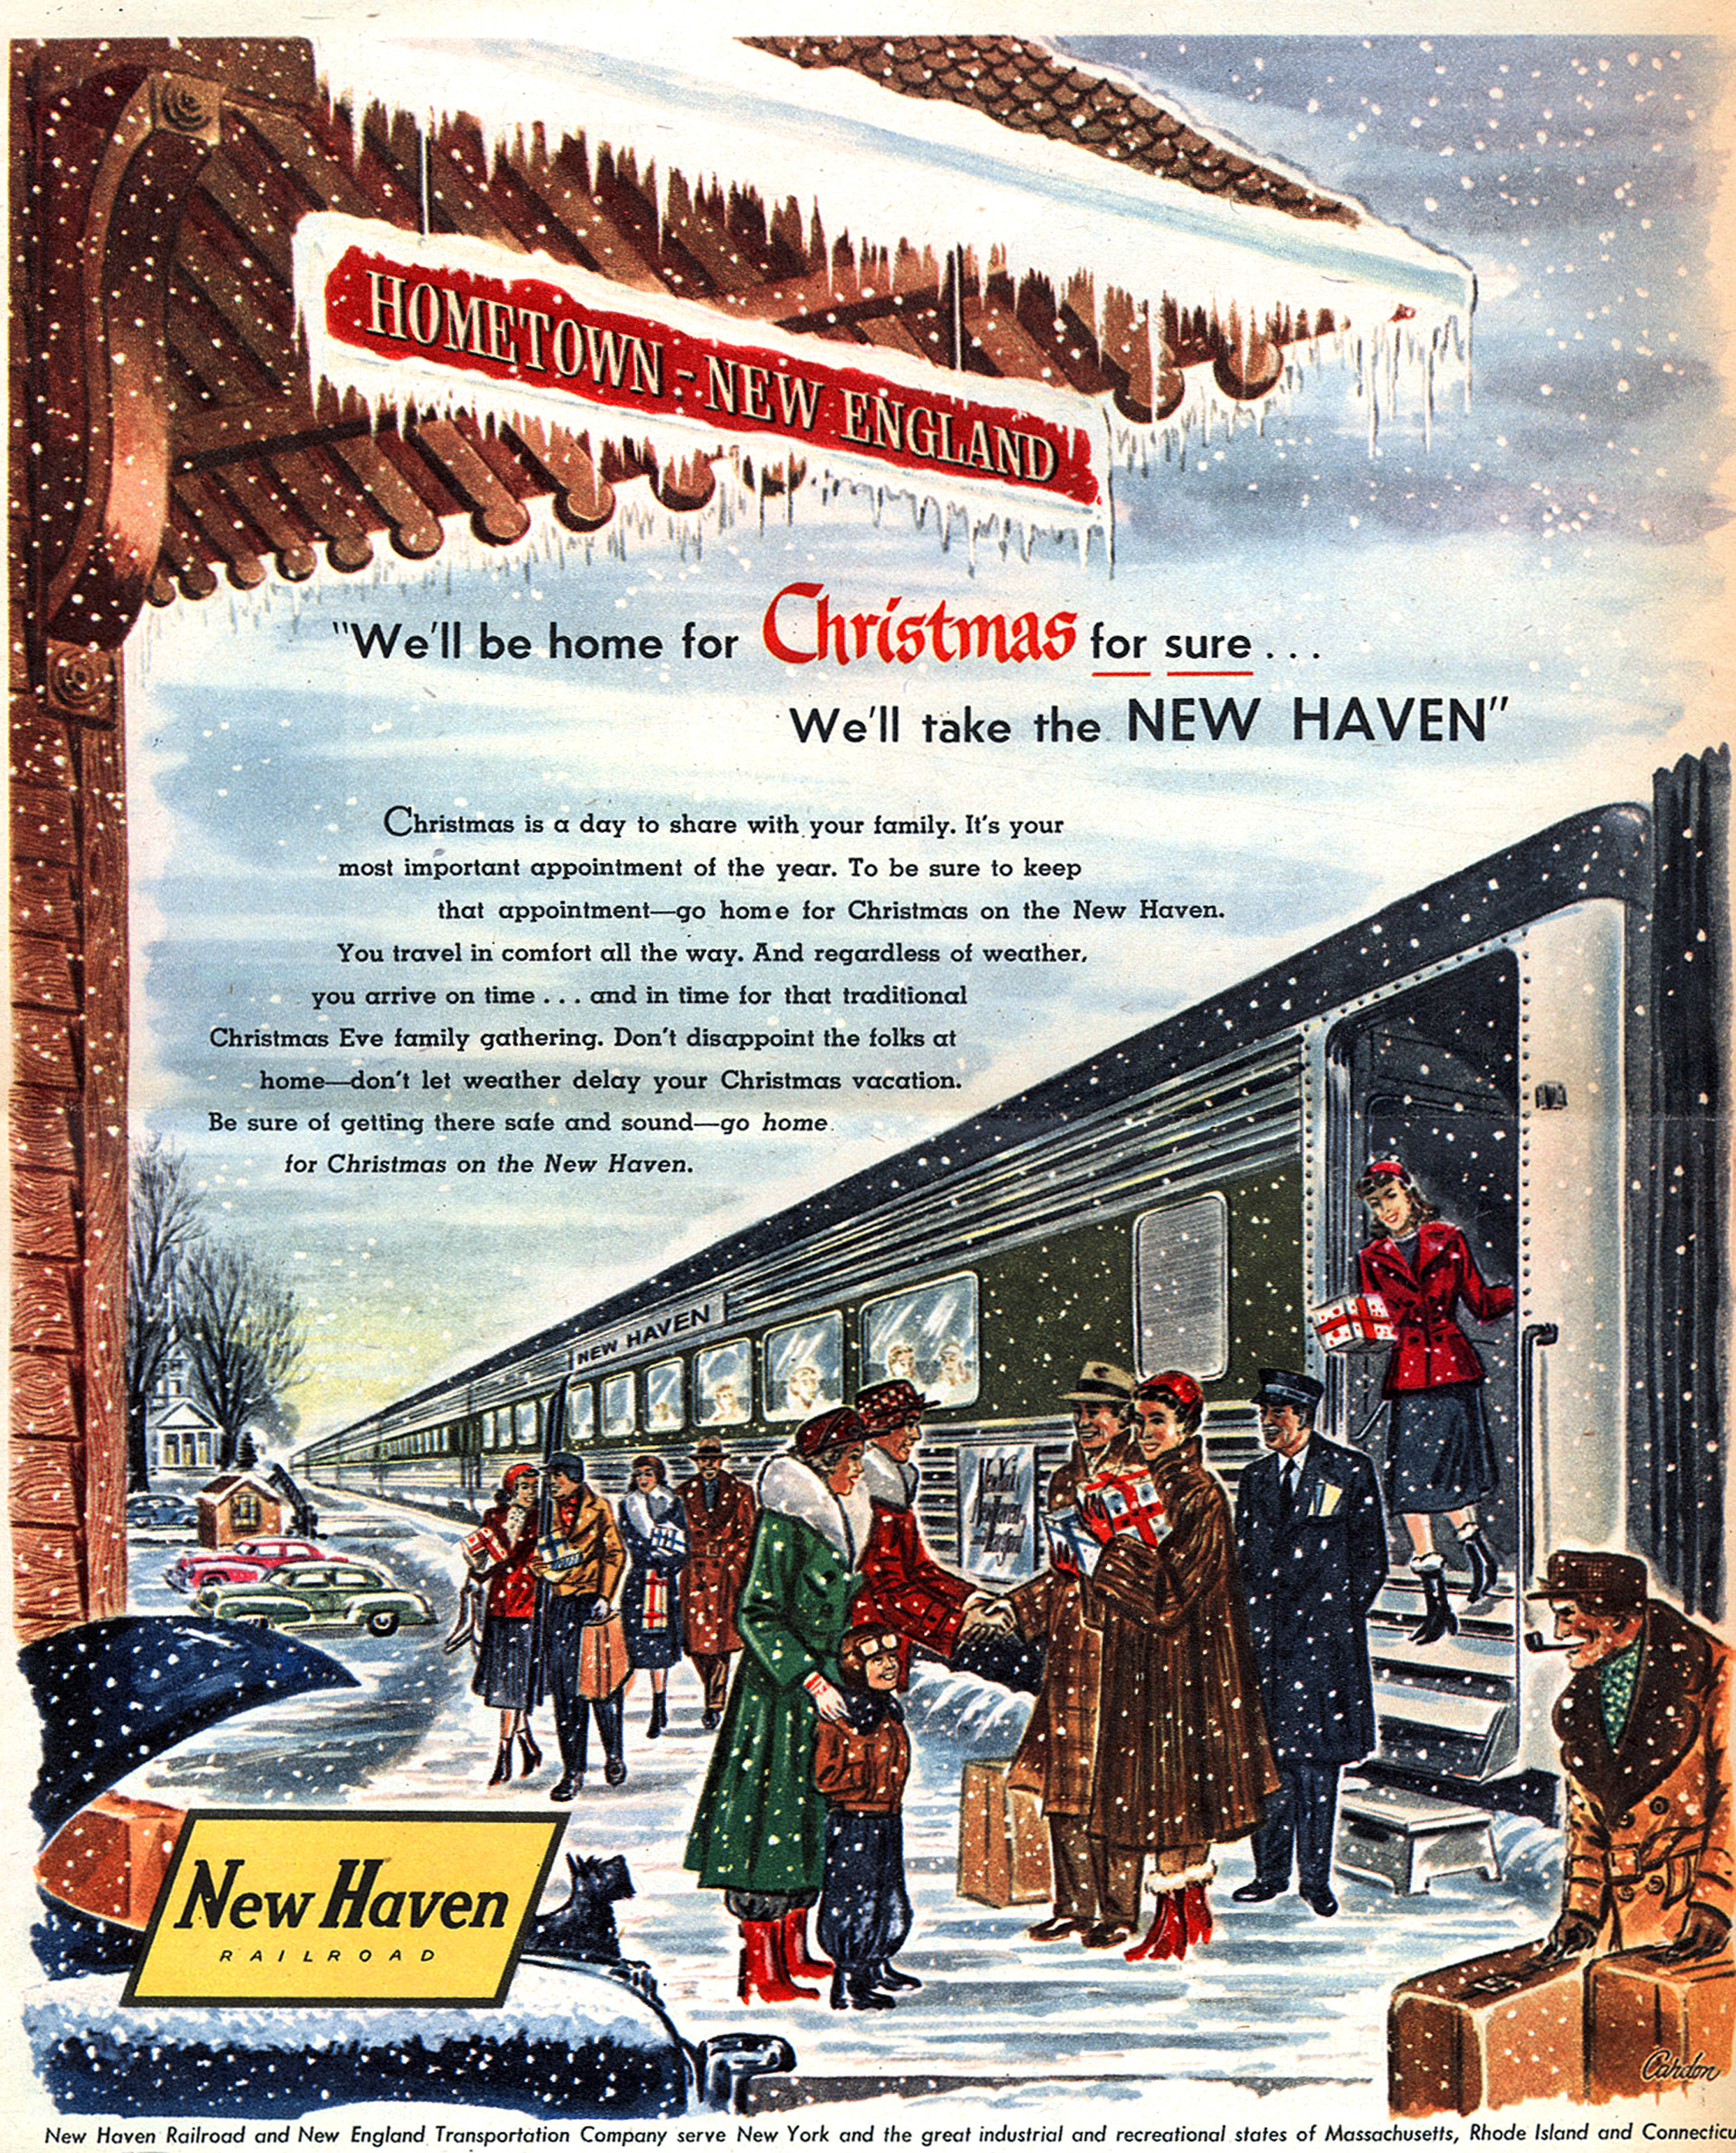 New Haven Railroad - published in The New York Times Magazine - December 1953